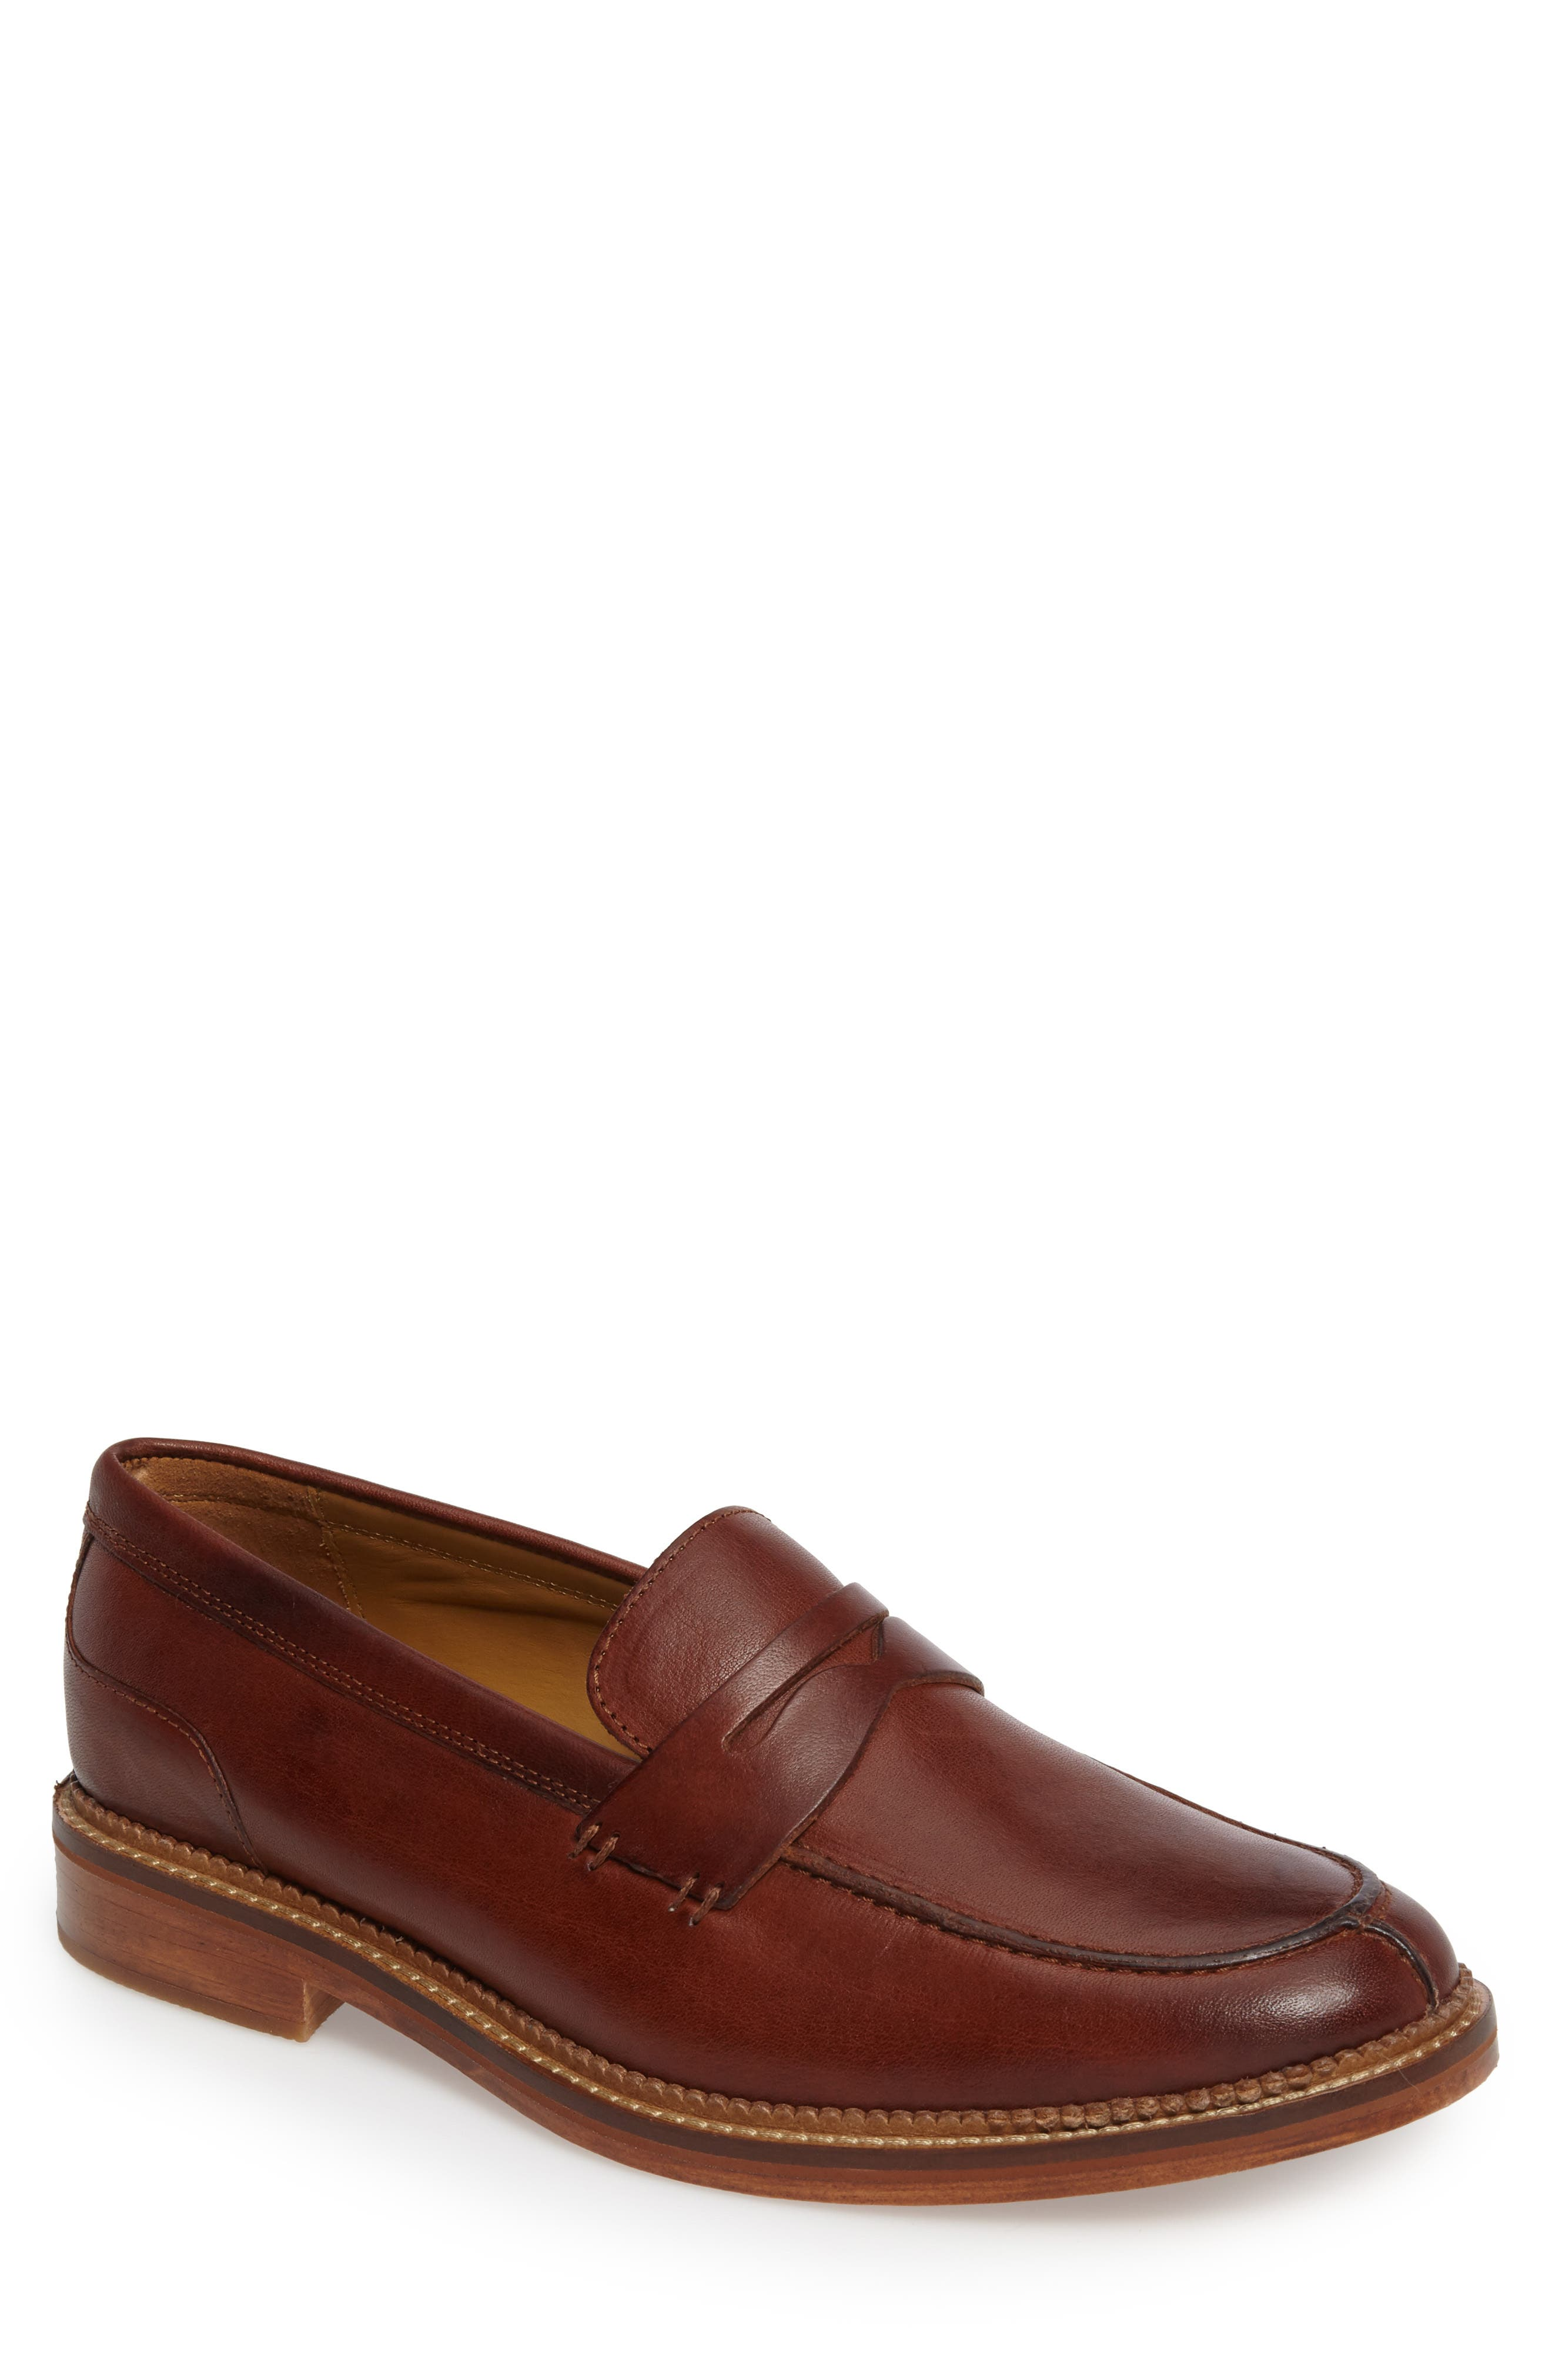 J SHOES Ravenwood Penny Loafer (Men)